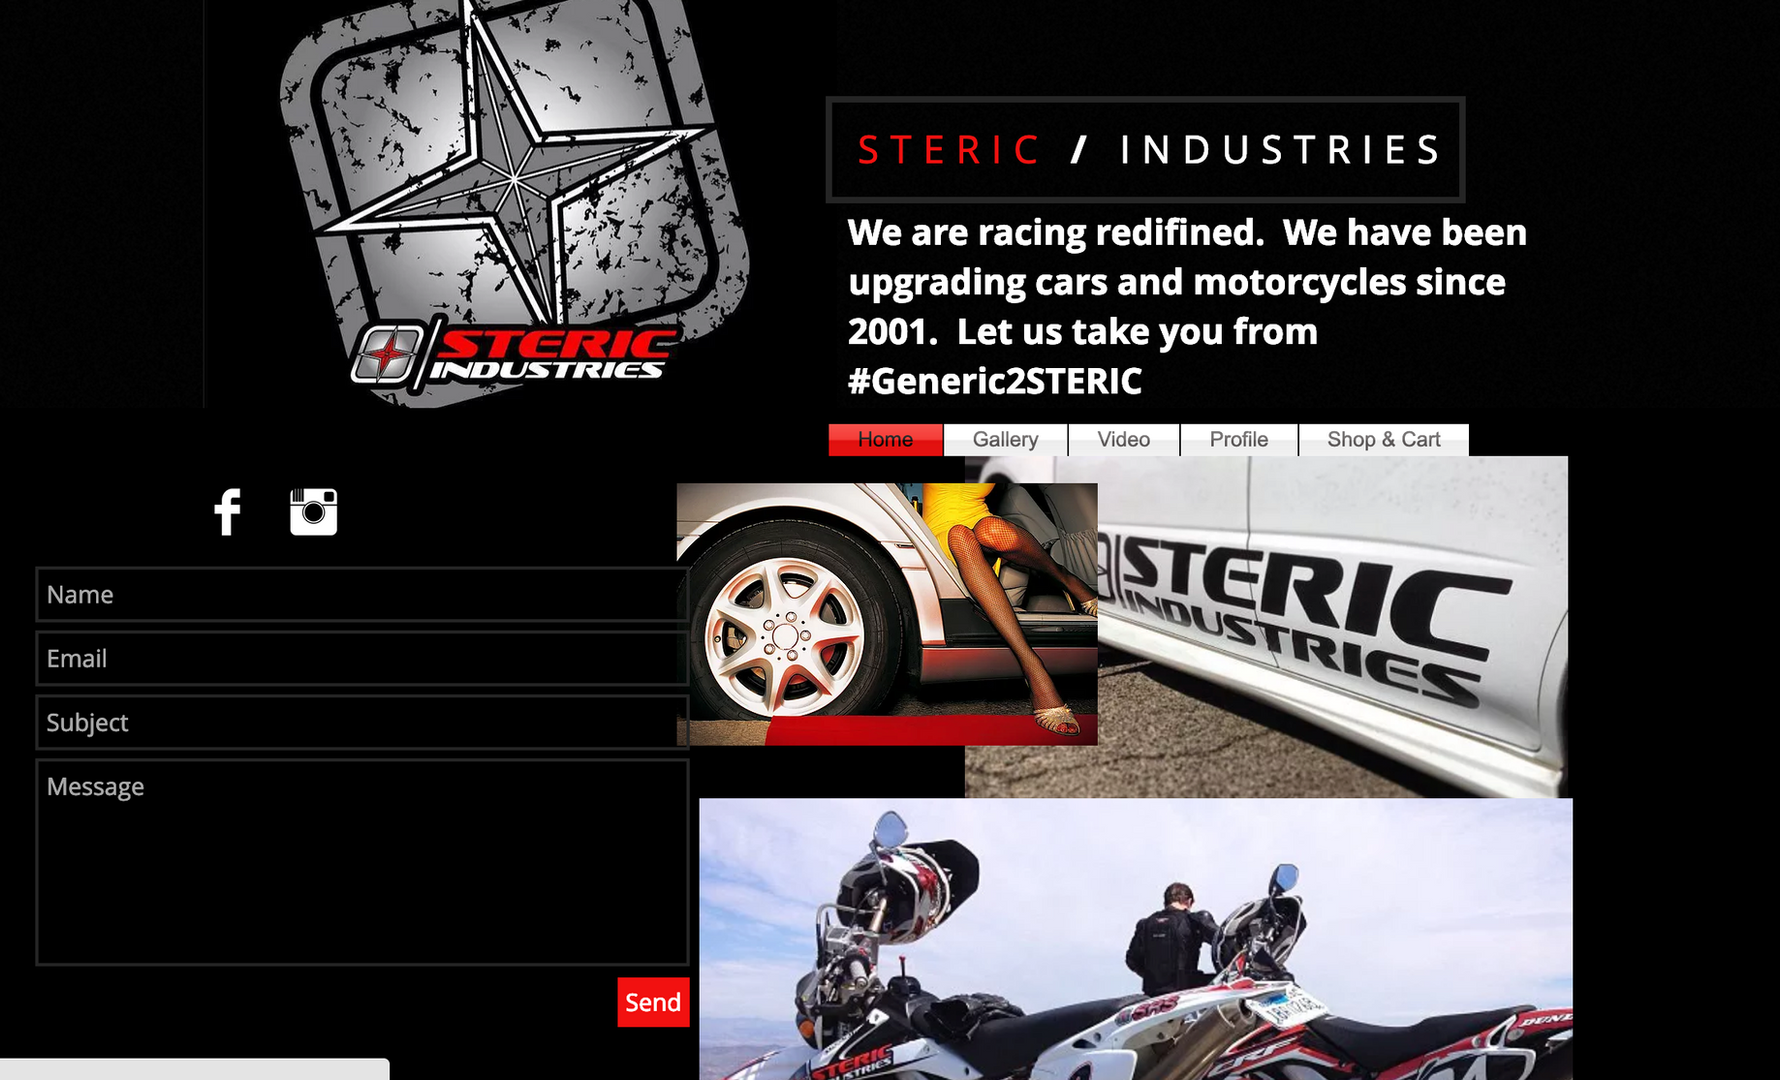 Steric Industries